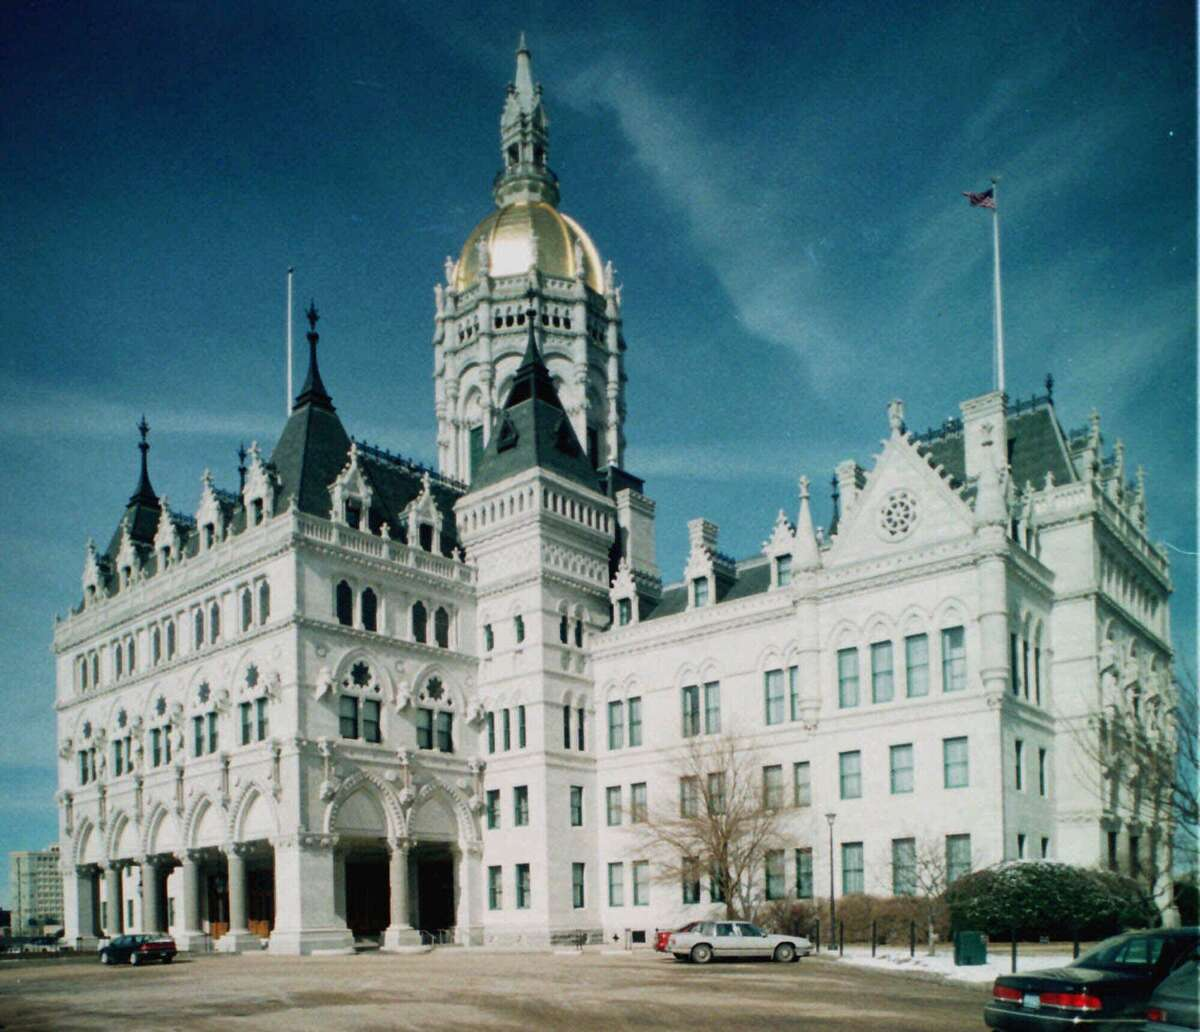 The State Capitol, which opened in 1878, is a gold-domed, Victorian-Gothic creation designed by Richard M. Upjohn.